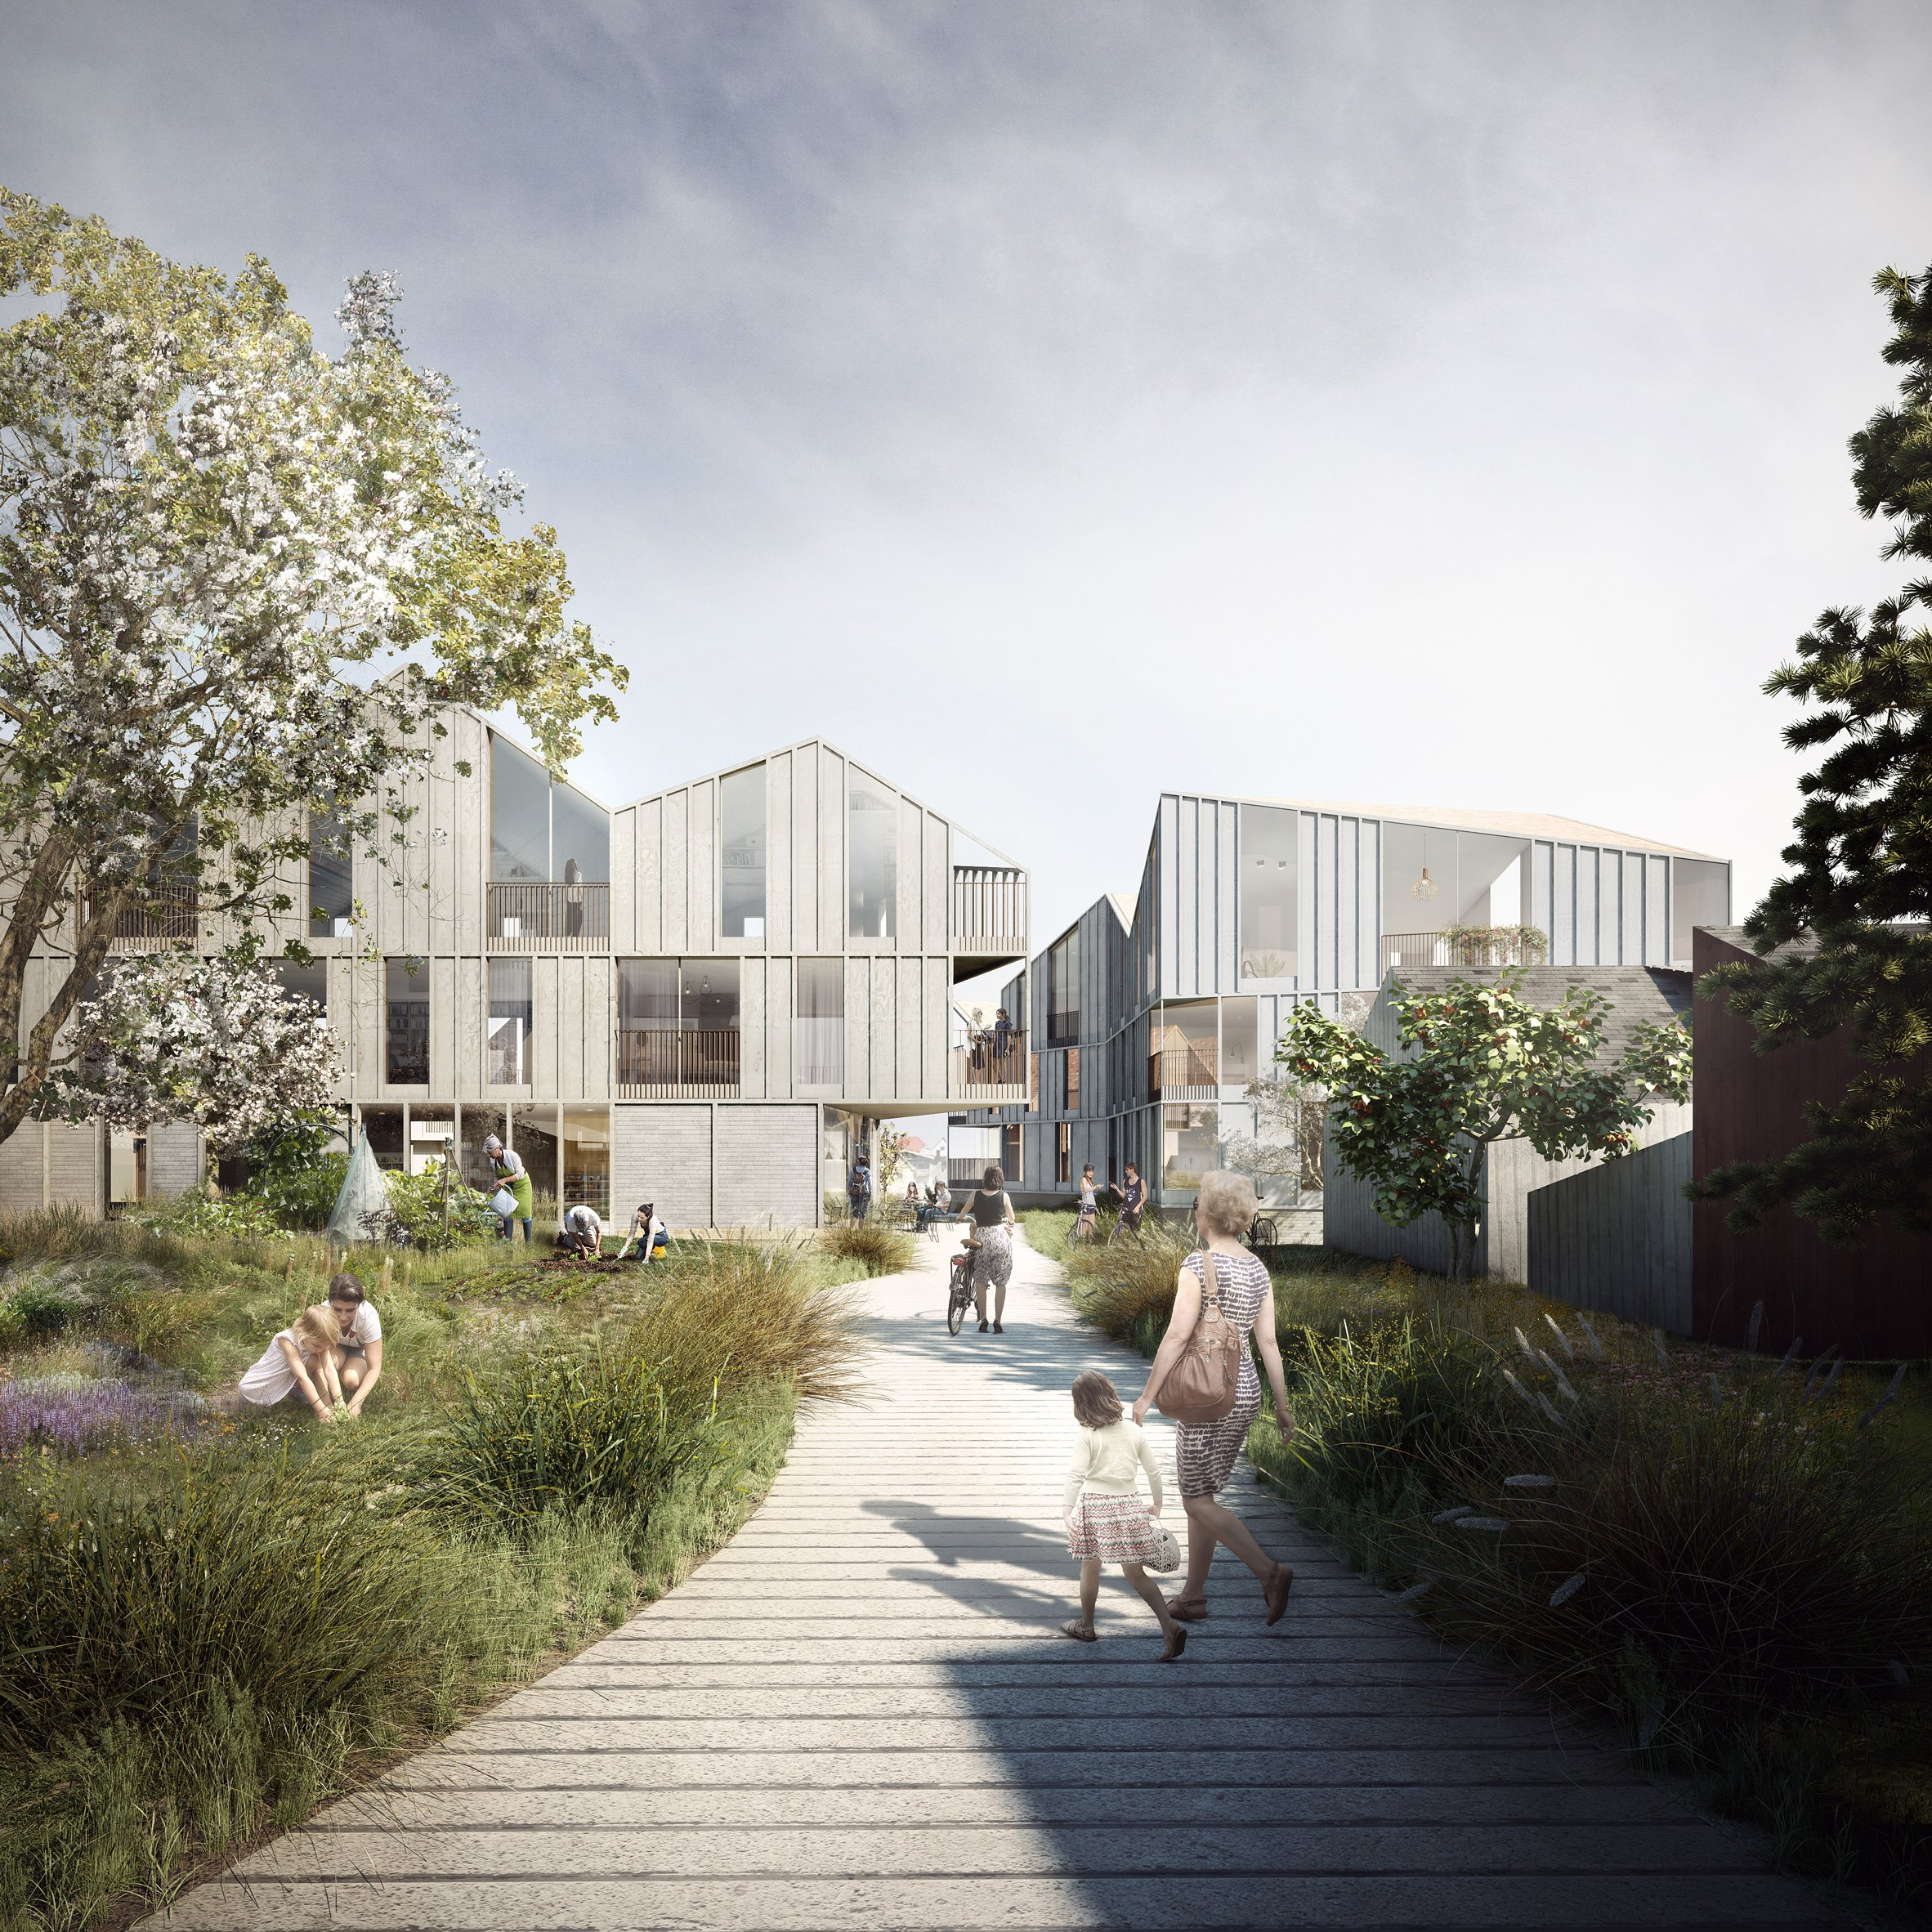 Charmant Haptic Designs Elderly Housing For Norway To Encourage Residents To  Socialise